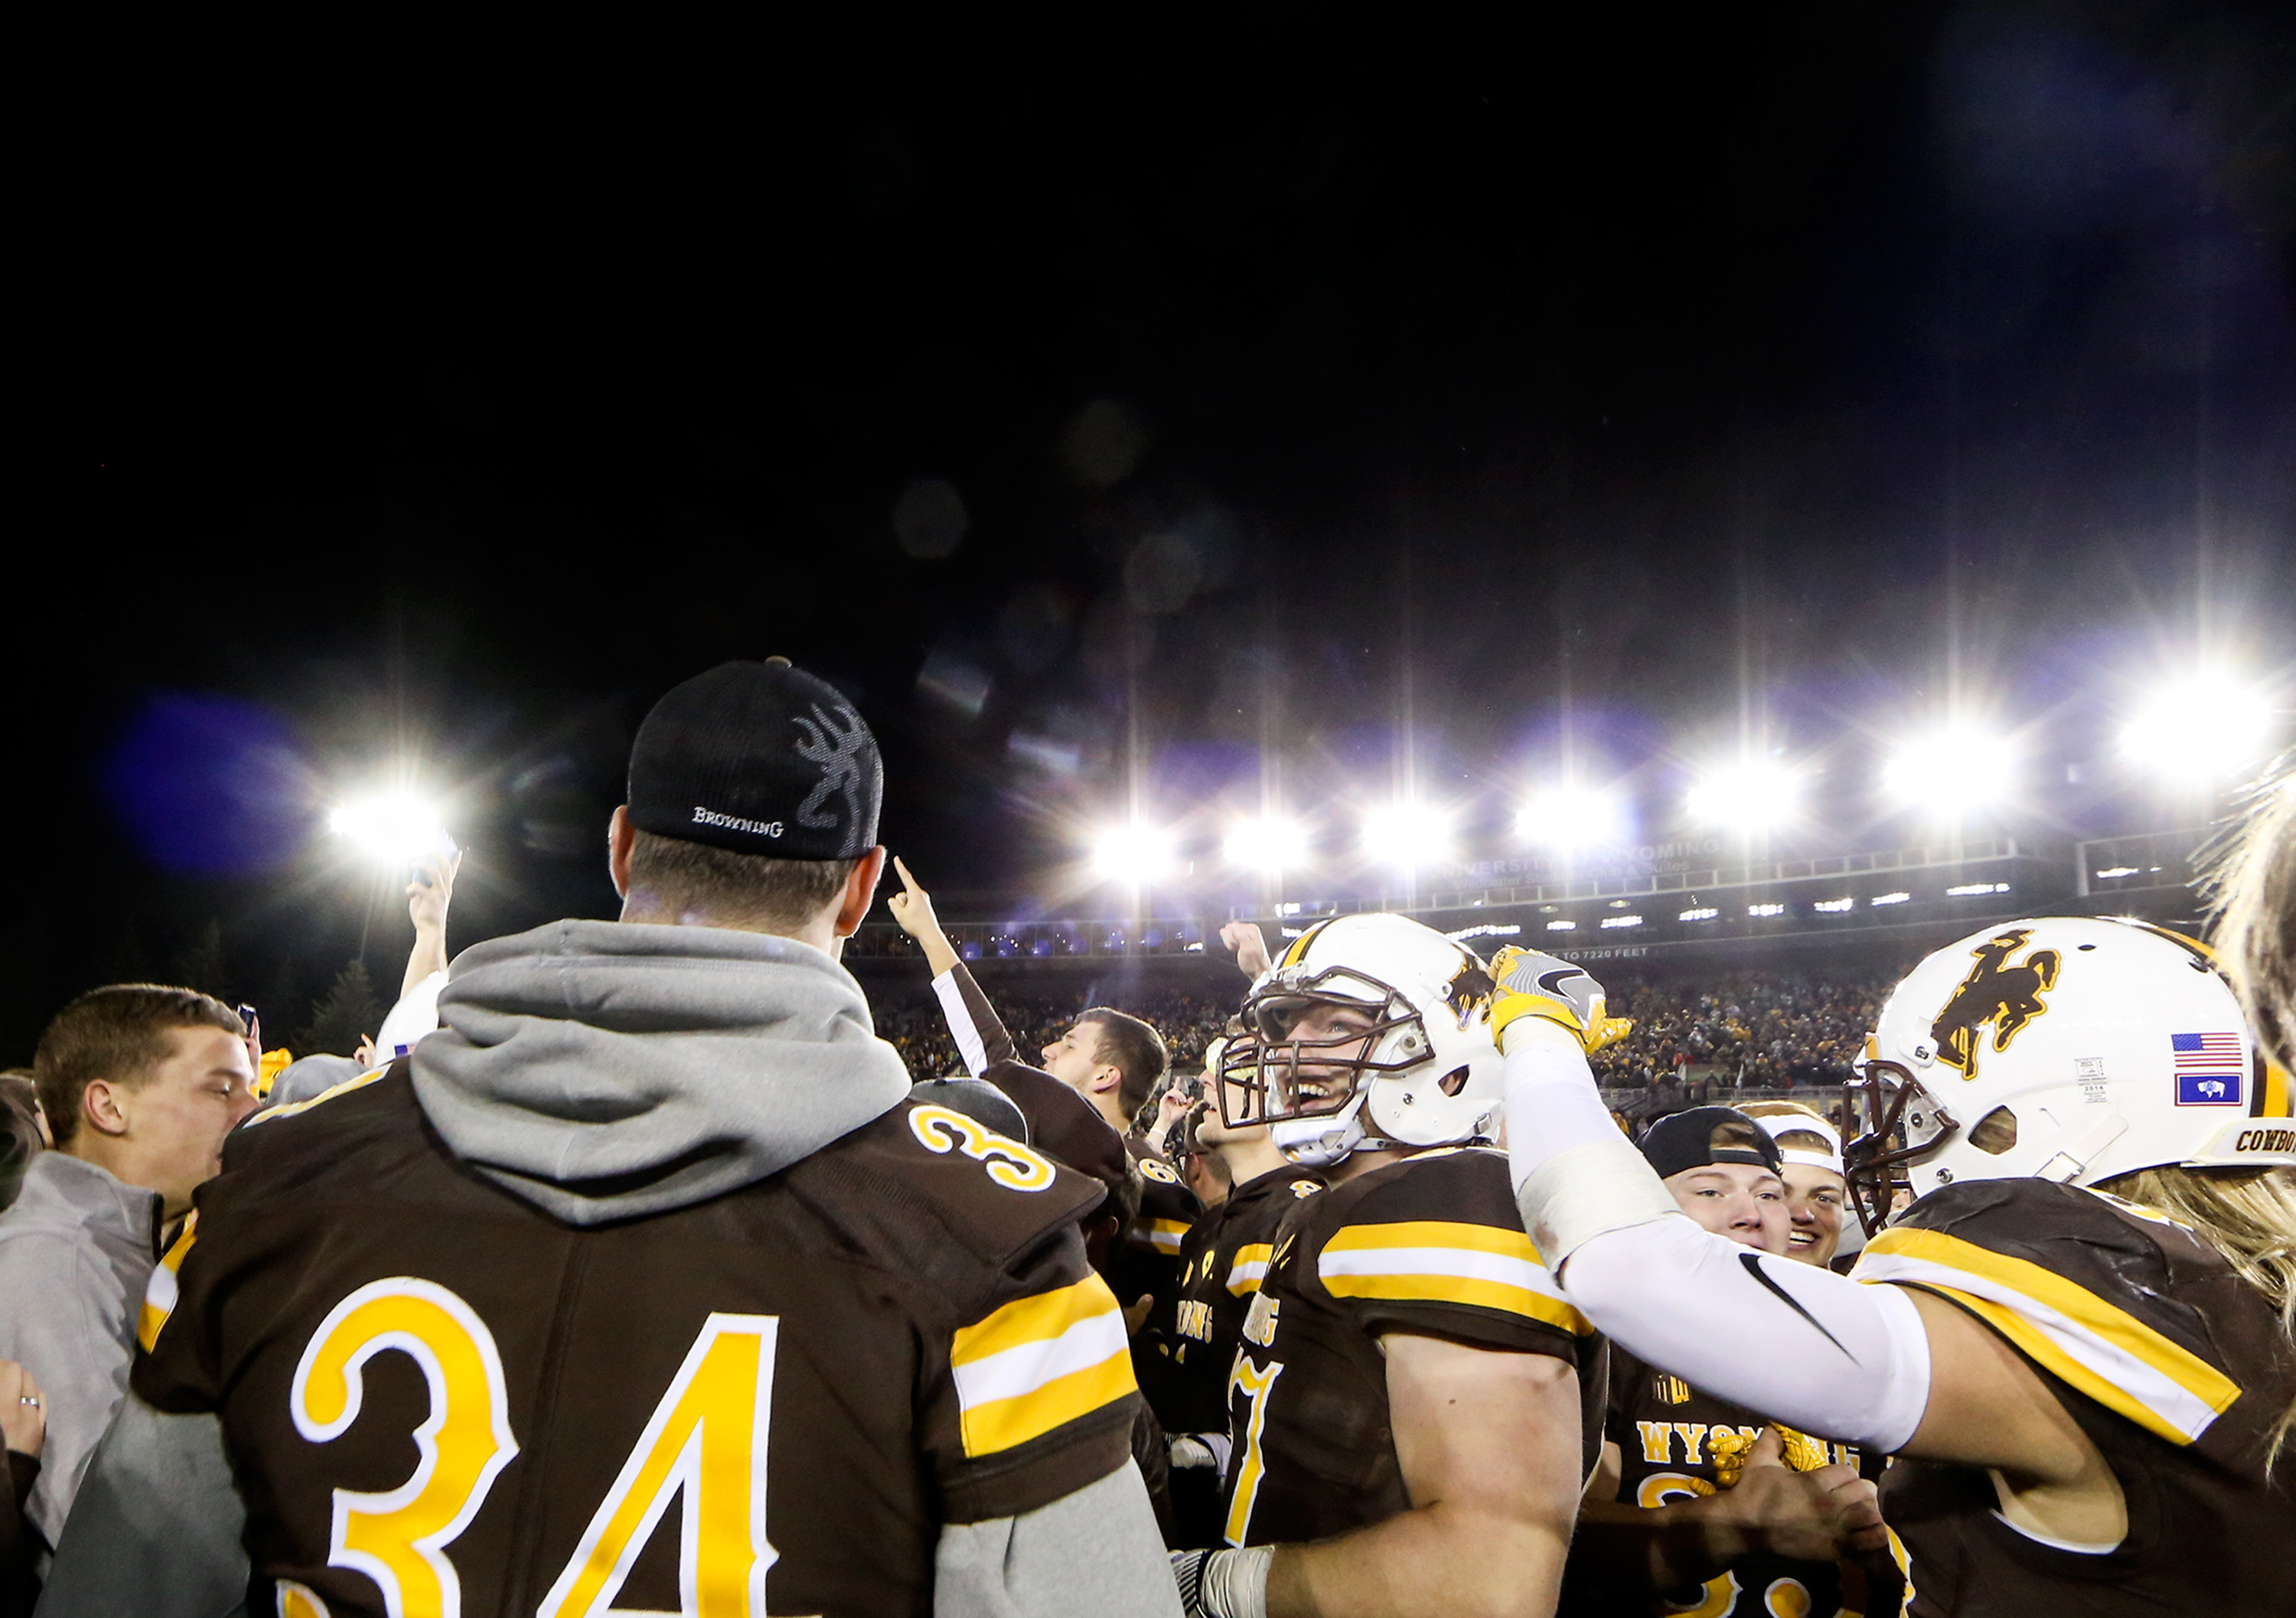 Wyoming players and fans celebrate after Wyomilng defeated Boise State 30-28 during an NCAA college football game at War Memorial Stadium in Laramie, Wyo., Saturday Oct. 29, 2016. (AP Photo/Shannon Broderick)